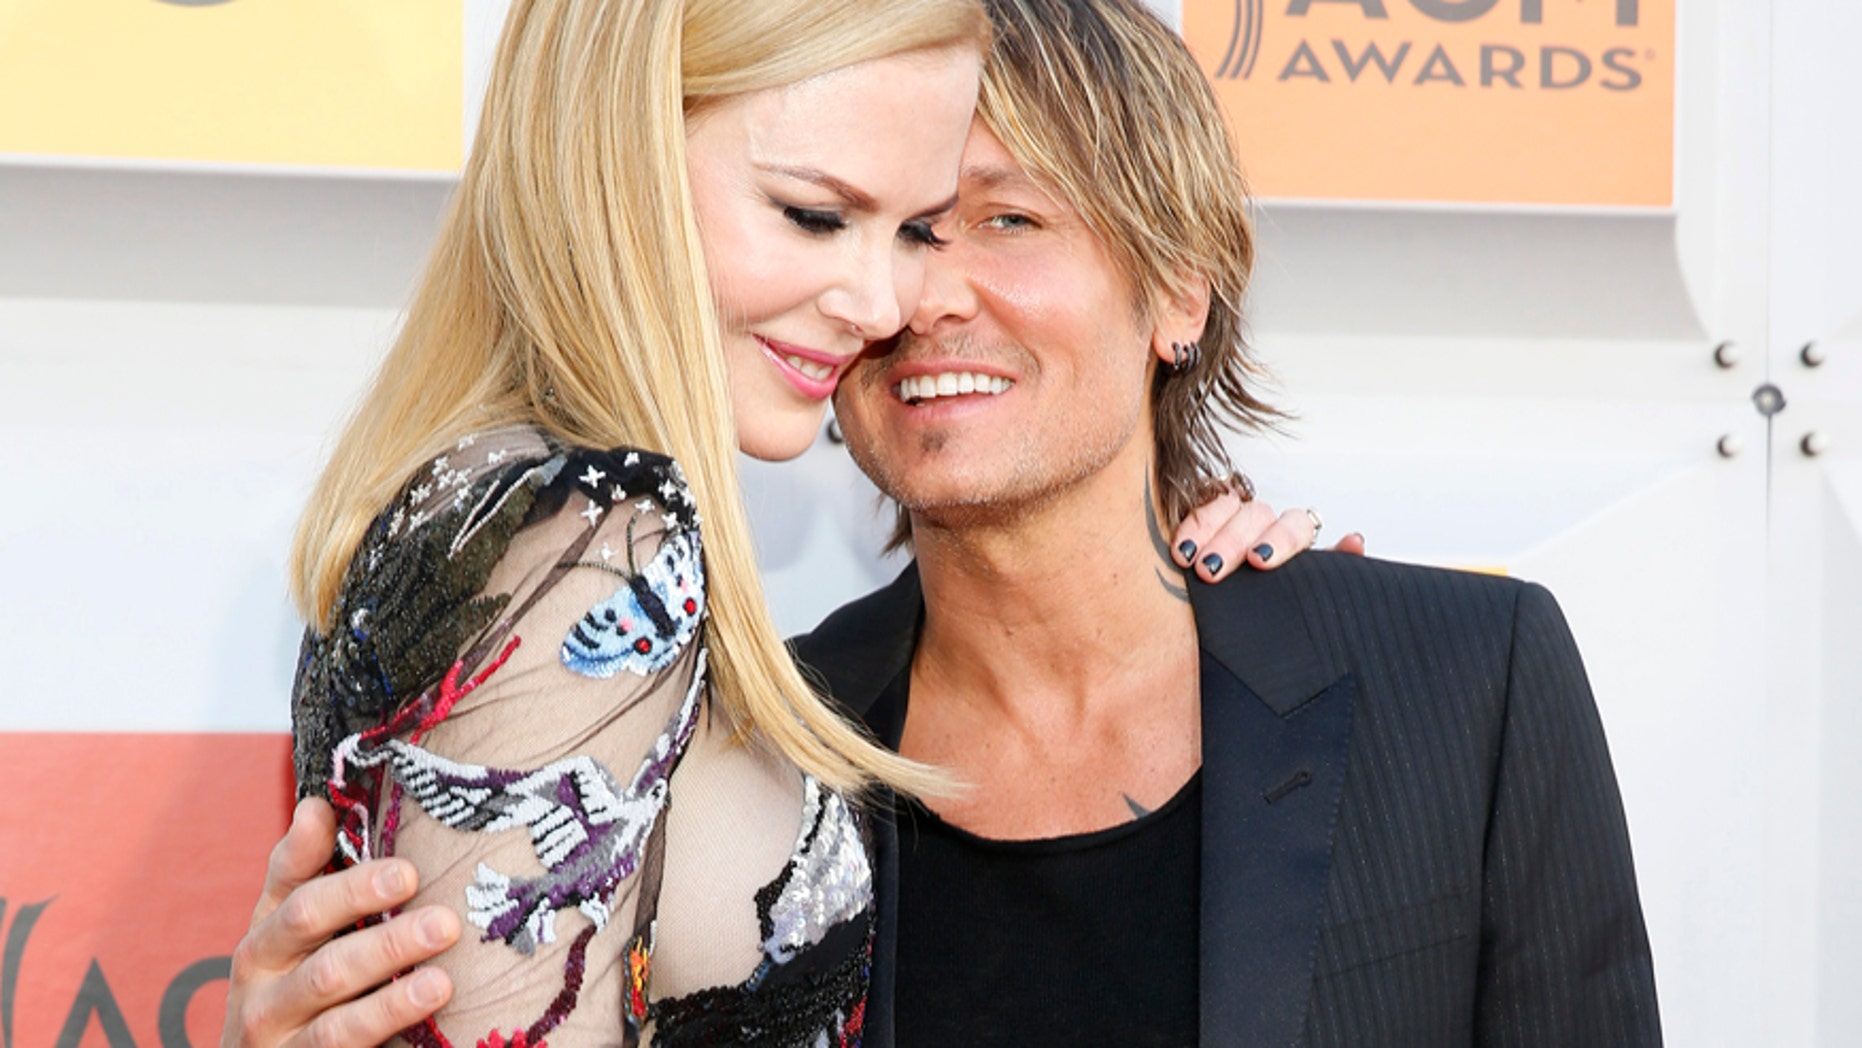 Actress Nicole Kidman and musician Keith Urban arrive at the 51st Academy of Country Music Awards in Las Vegas, Nevada April 3, 2016.